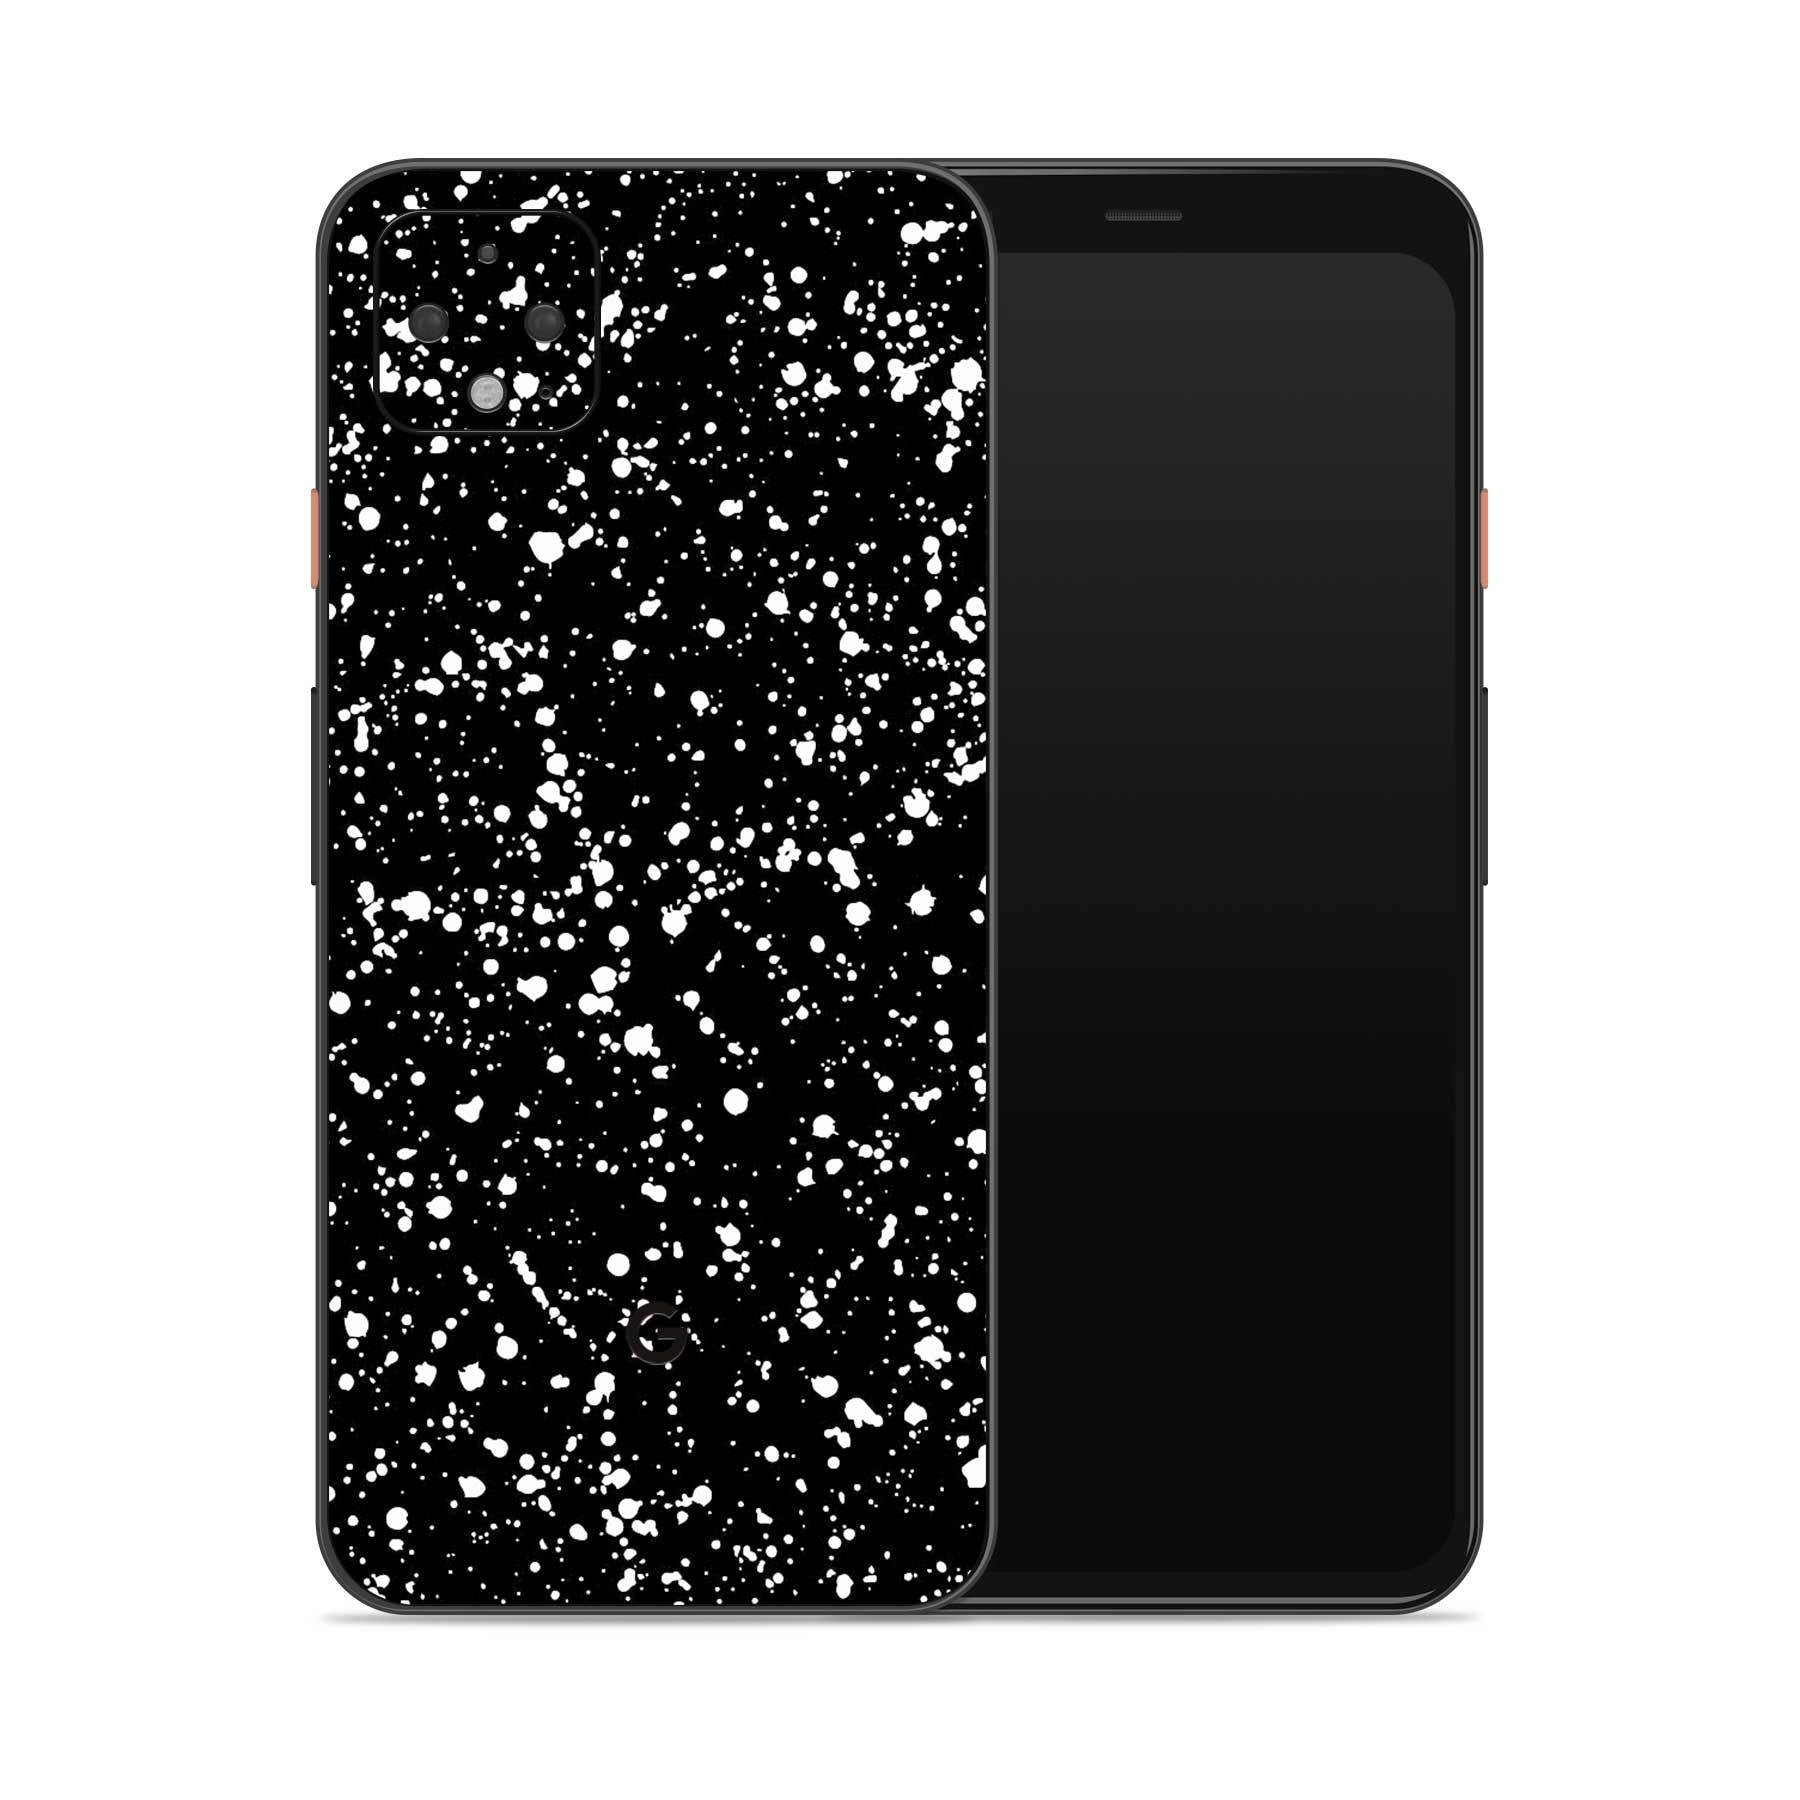 Speck Cover Pixel 4 XL